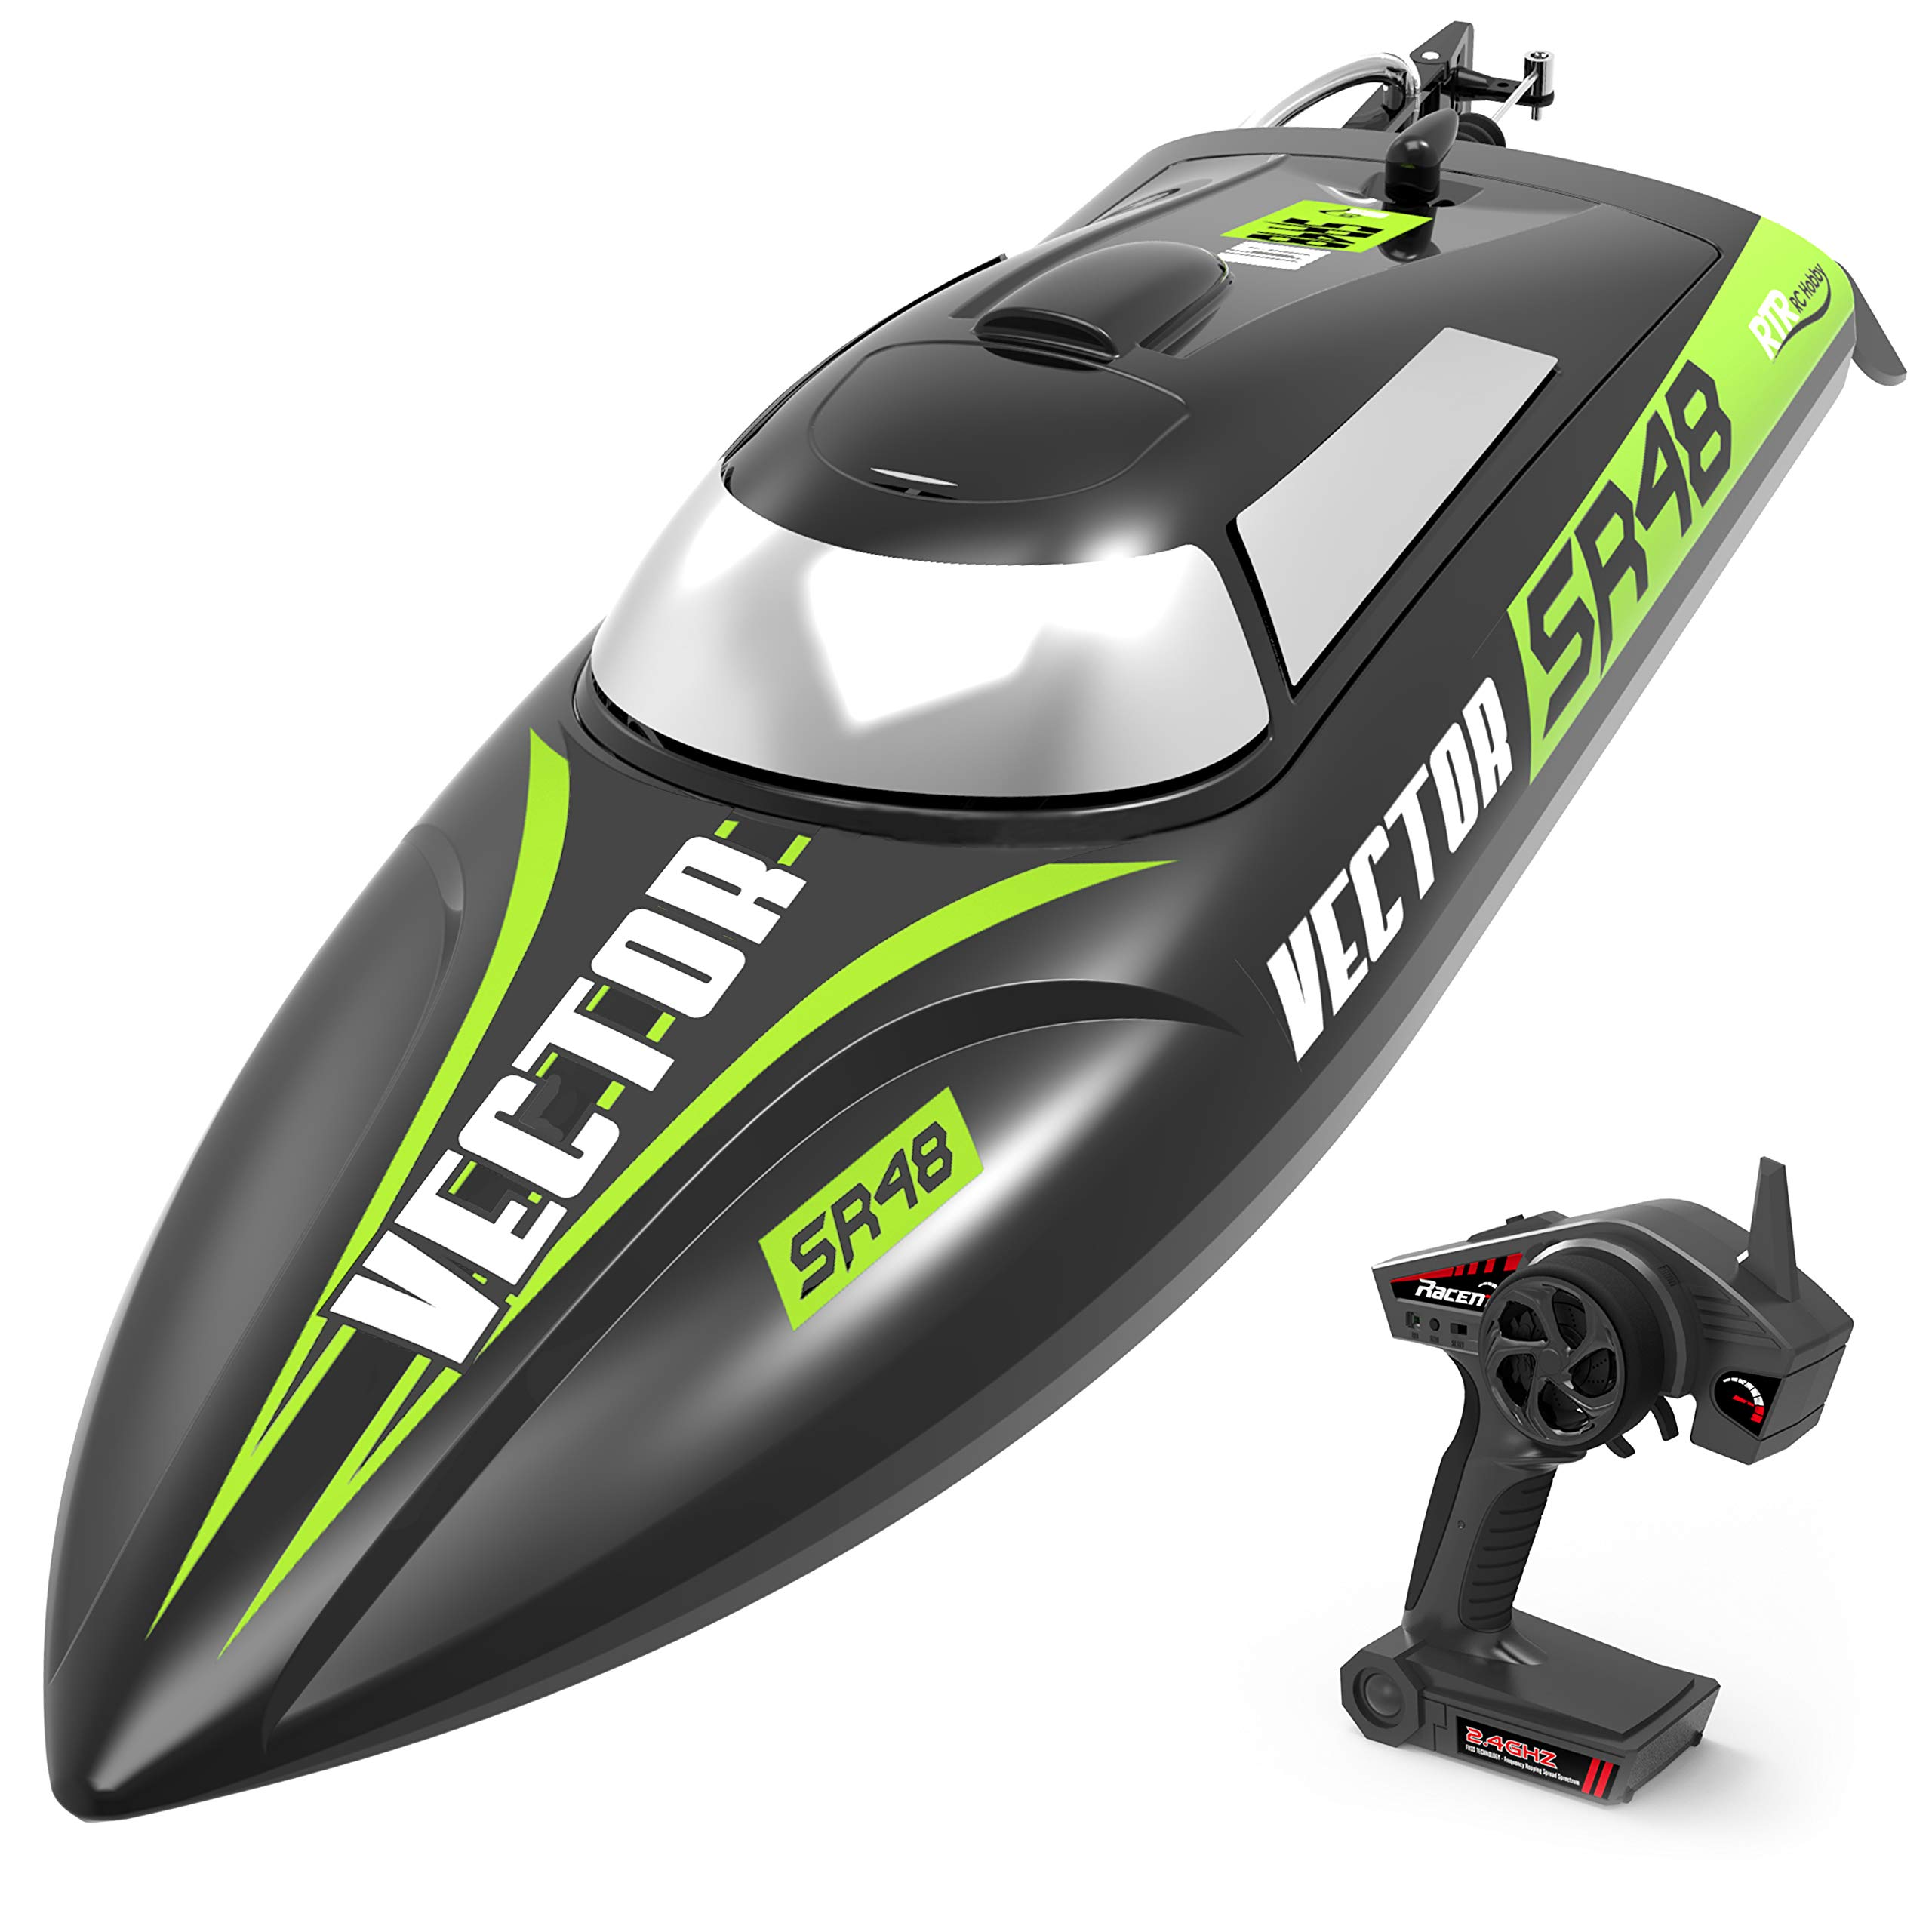 VOLANTEXRC Brusheless RC Boat 45km/h High Speed Remote Control Boat Vector SR48 with Self-Righting Reverse Function in Pools, Lakes & Rivers for Kids and Adults (797-3 RTR Brushless)